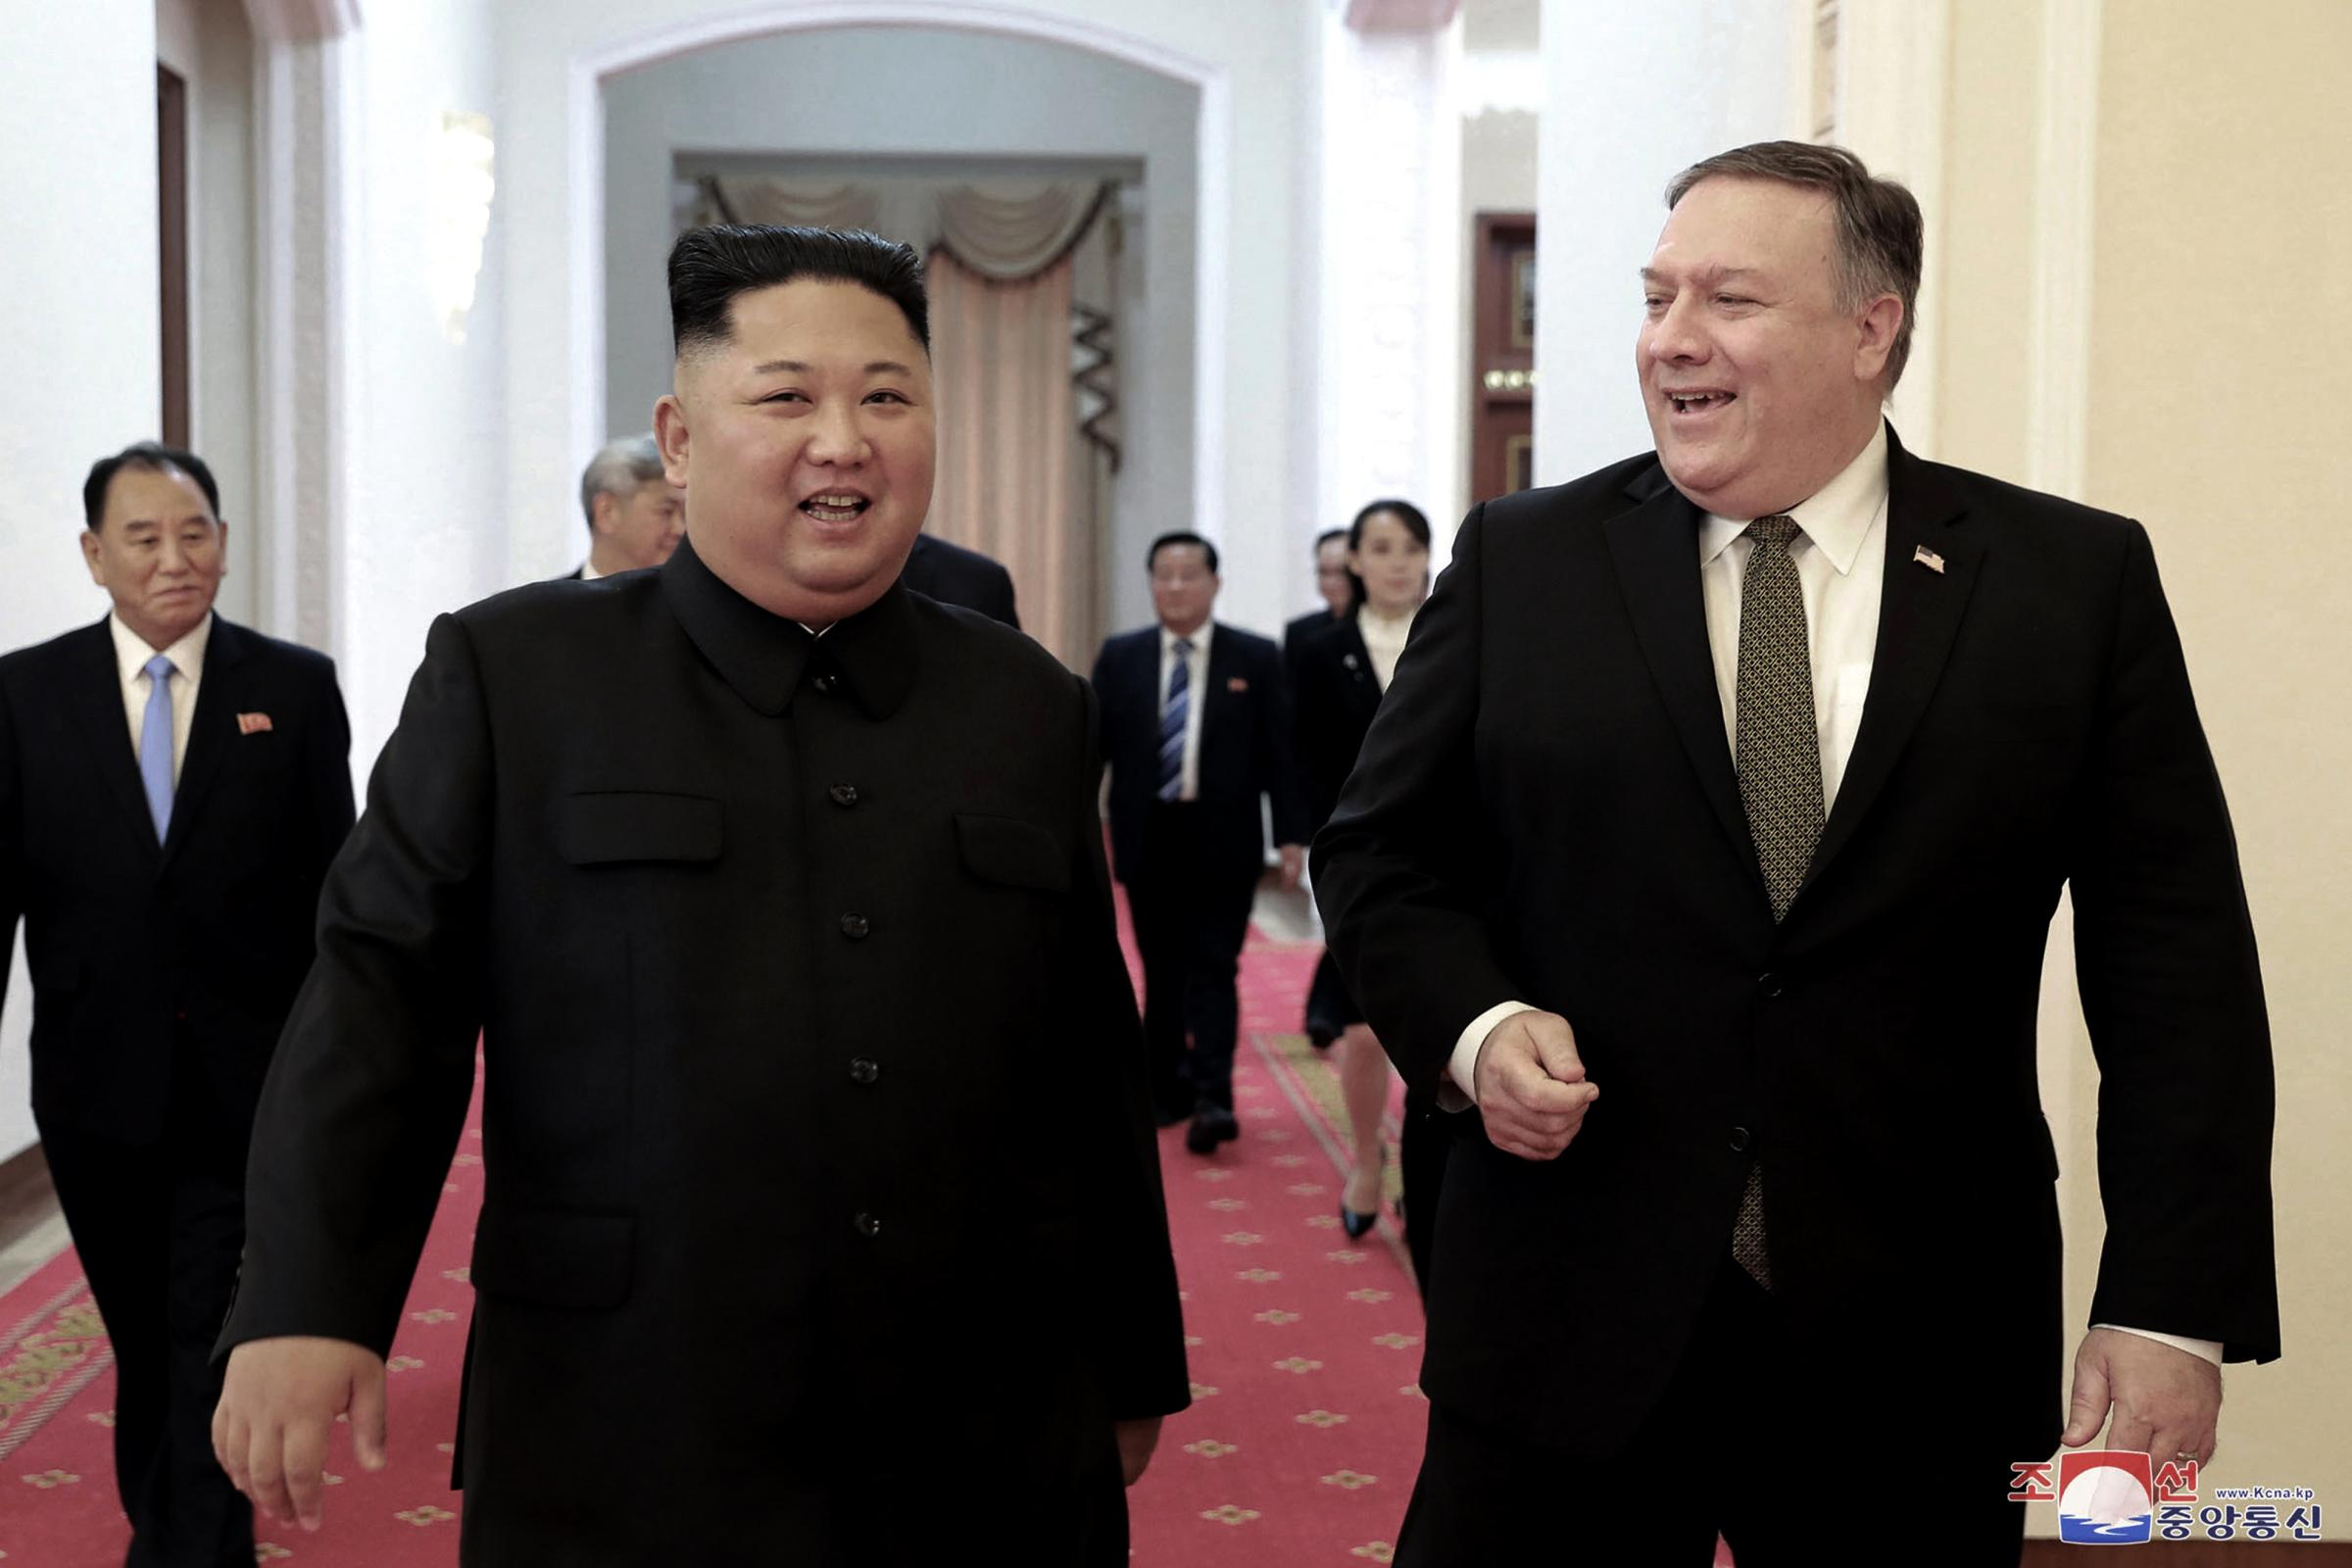 Kim Jong Un with US secretary of state Mike Pompeo